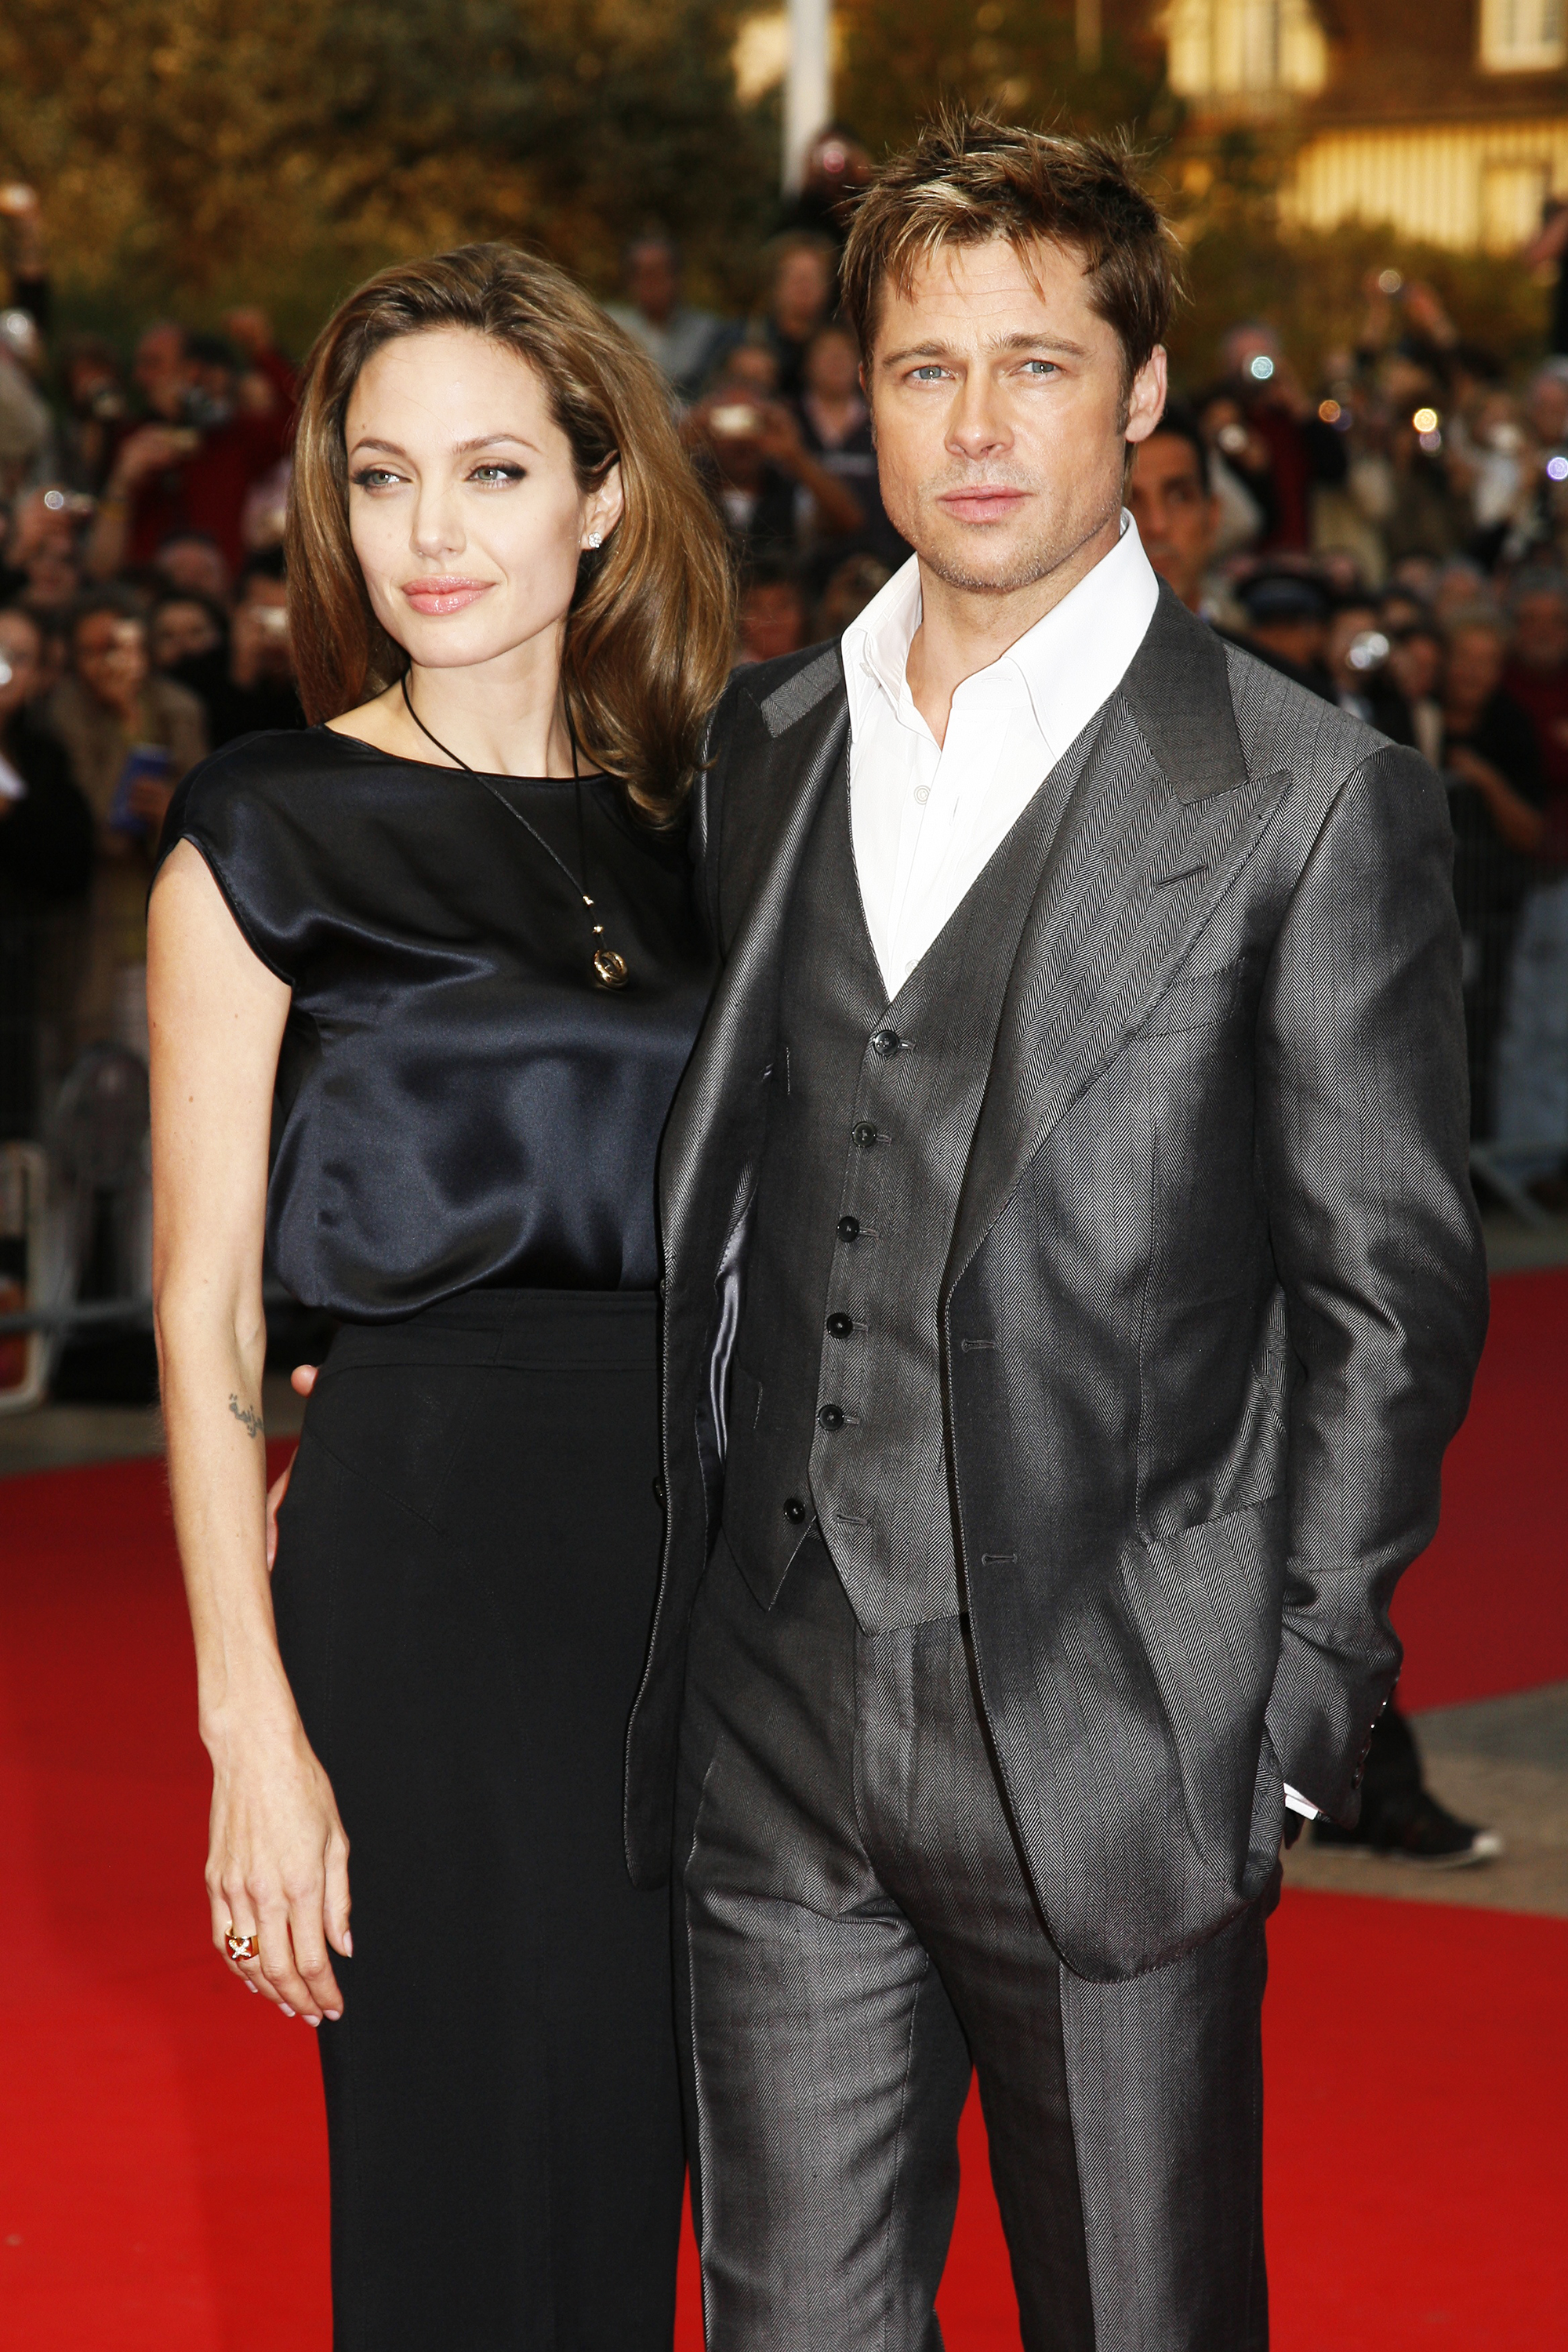 Angelina Jolie and Brad Pitt in Deauville, France on Sept. 3, 2007.